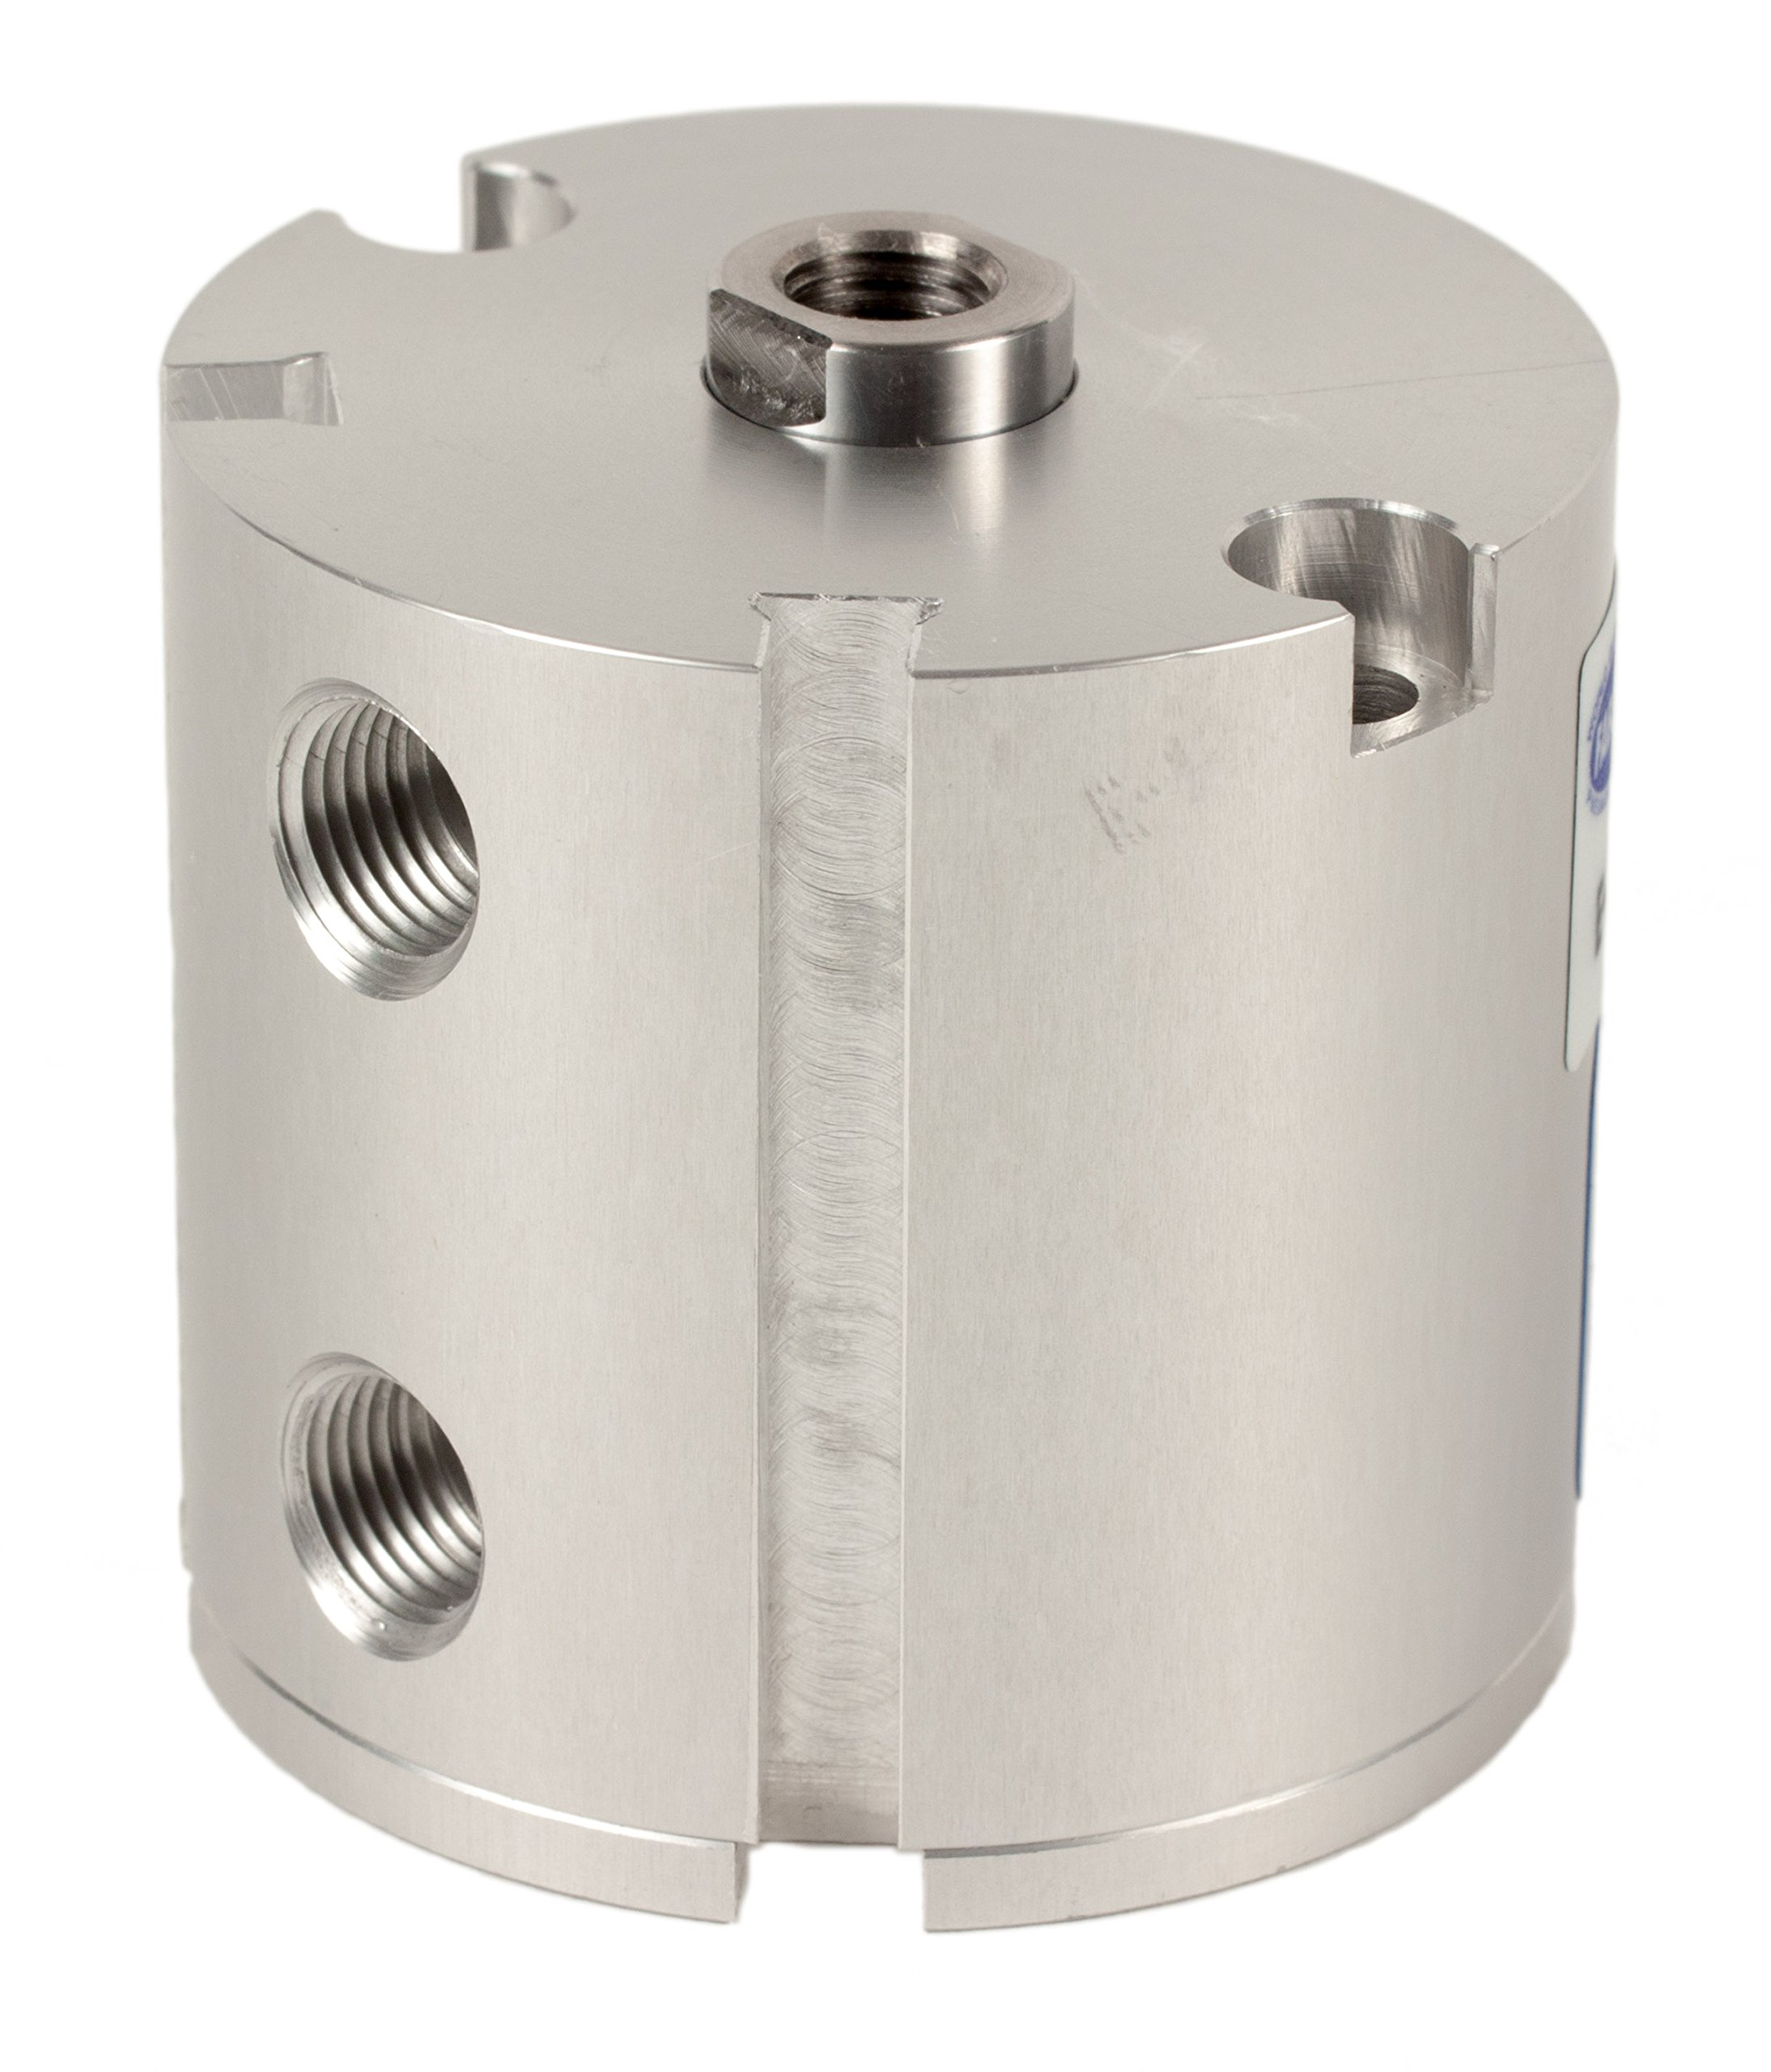 Fabco-Air E-121-X-E Original Pancake Cylinder, Double Acting, Maximum Pressure of 250 PSI, Switch Ready with Magnet, 1-1/8'' Bore Diameter x 1'' Stroke